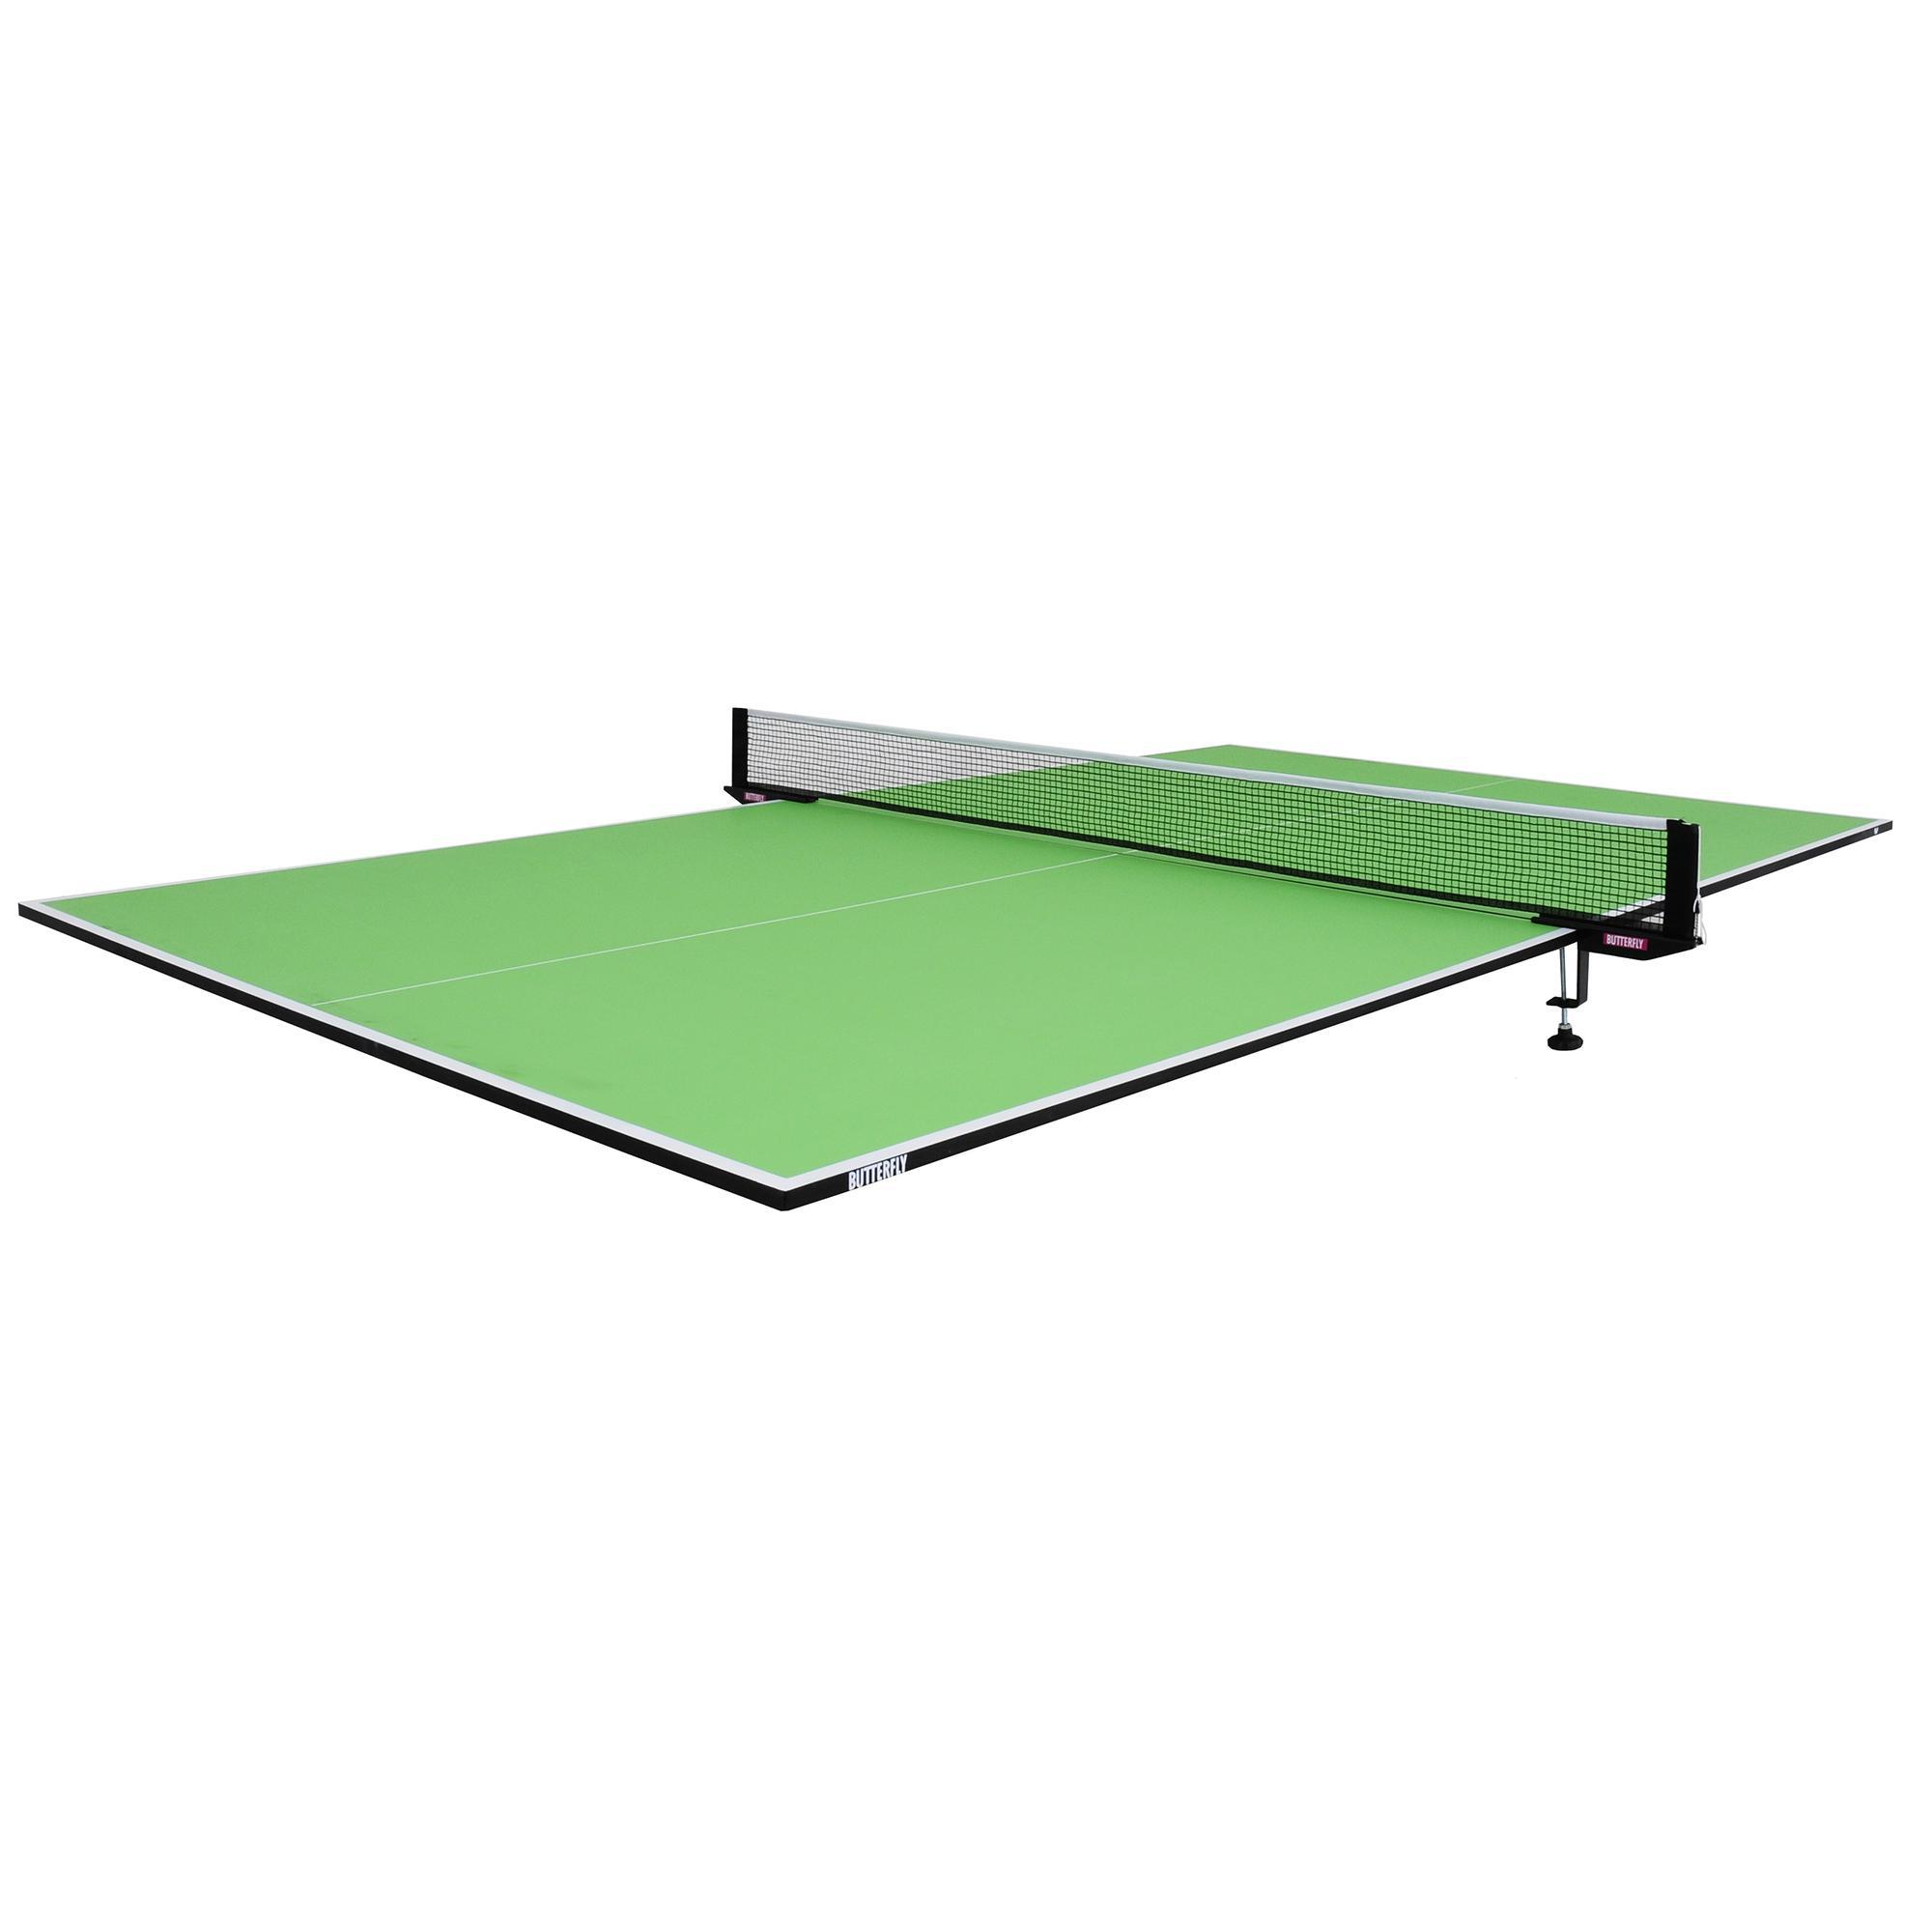 pong table dp outdoor all rollaway butterfly weather warranty amazon ping com year frame playback tennis top